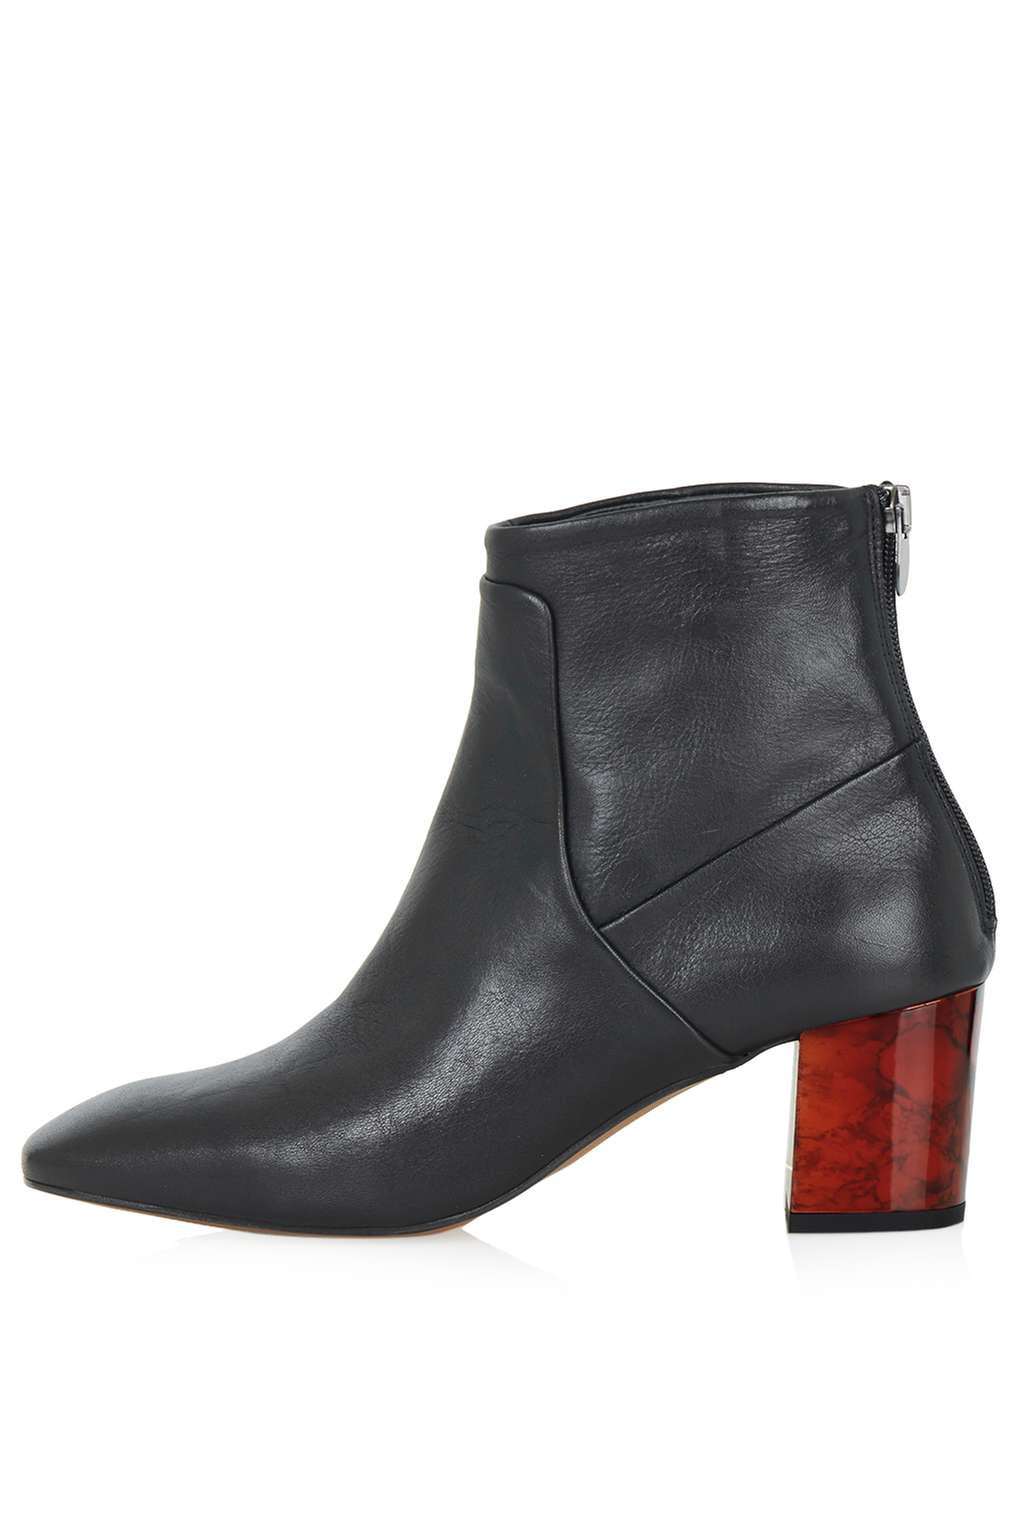 TopShop MISTIC Leather Ankle Boots